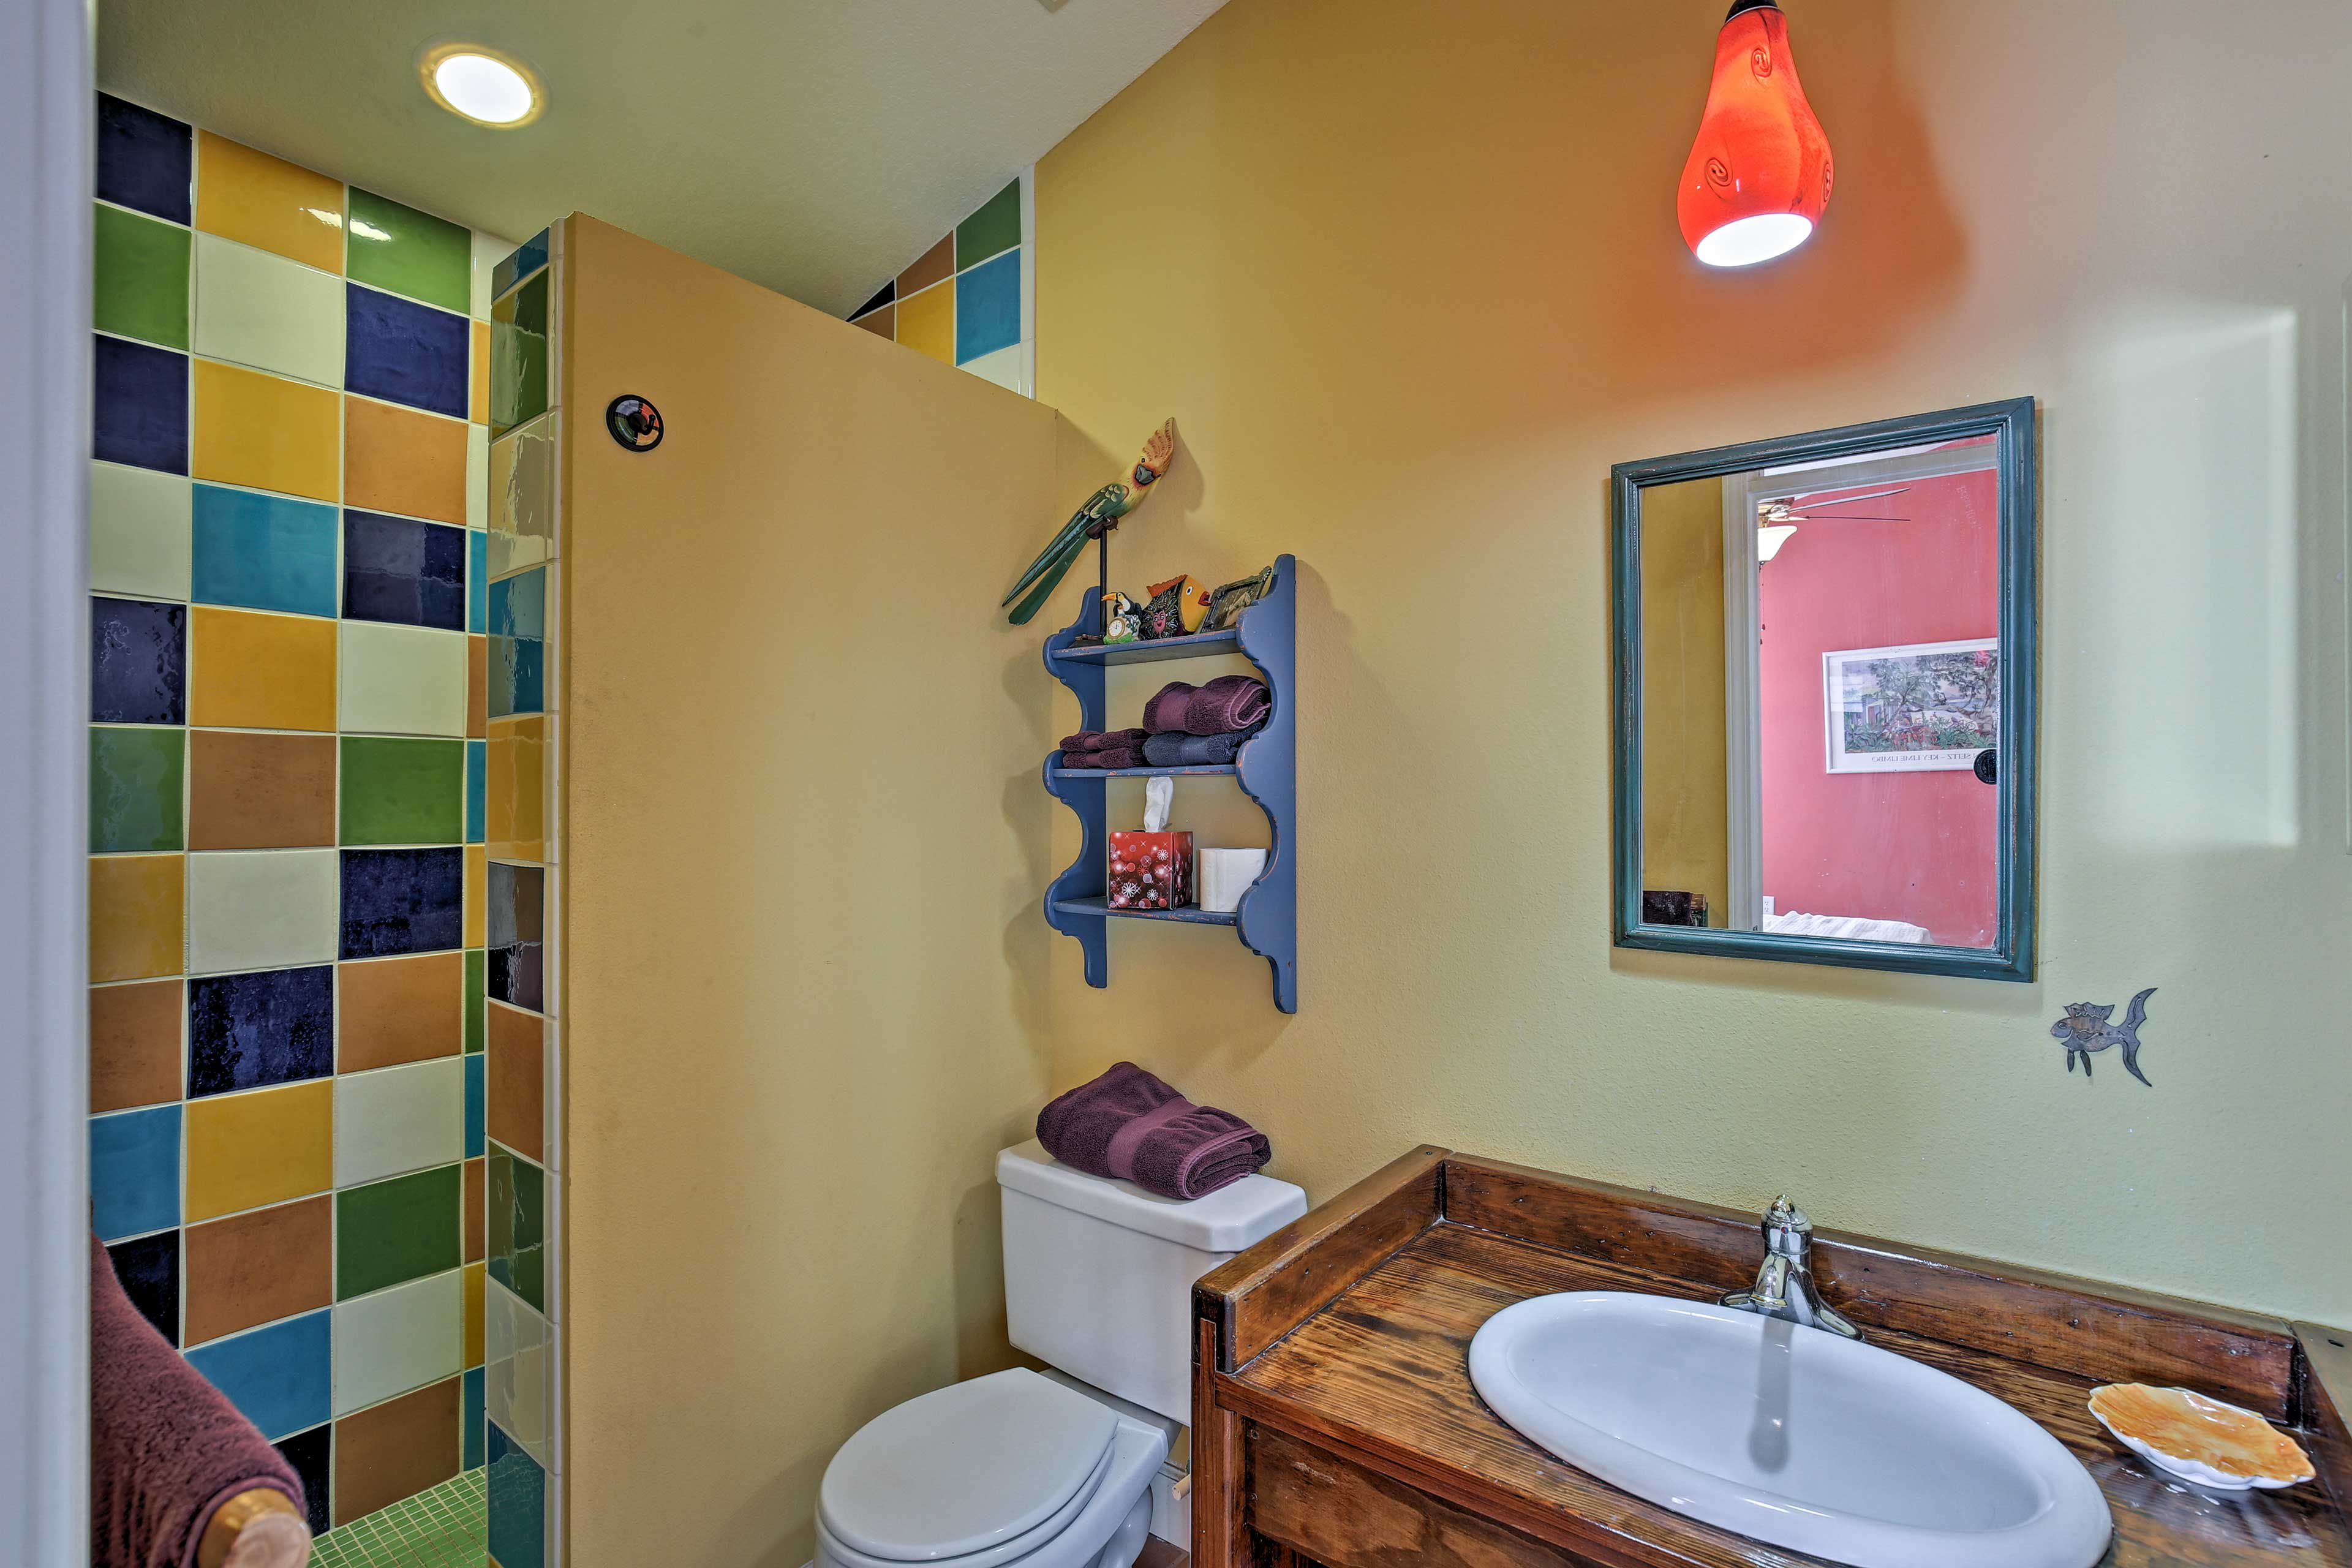 The second en-suite bathroom is equipped with a walk-in shower.